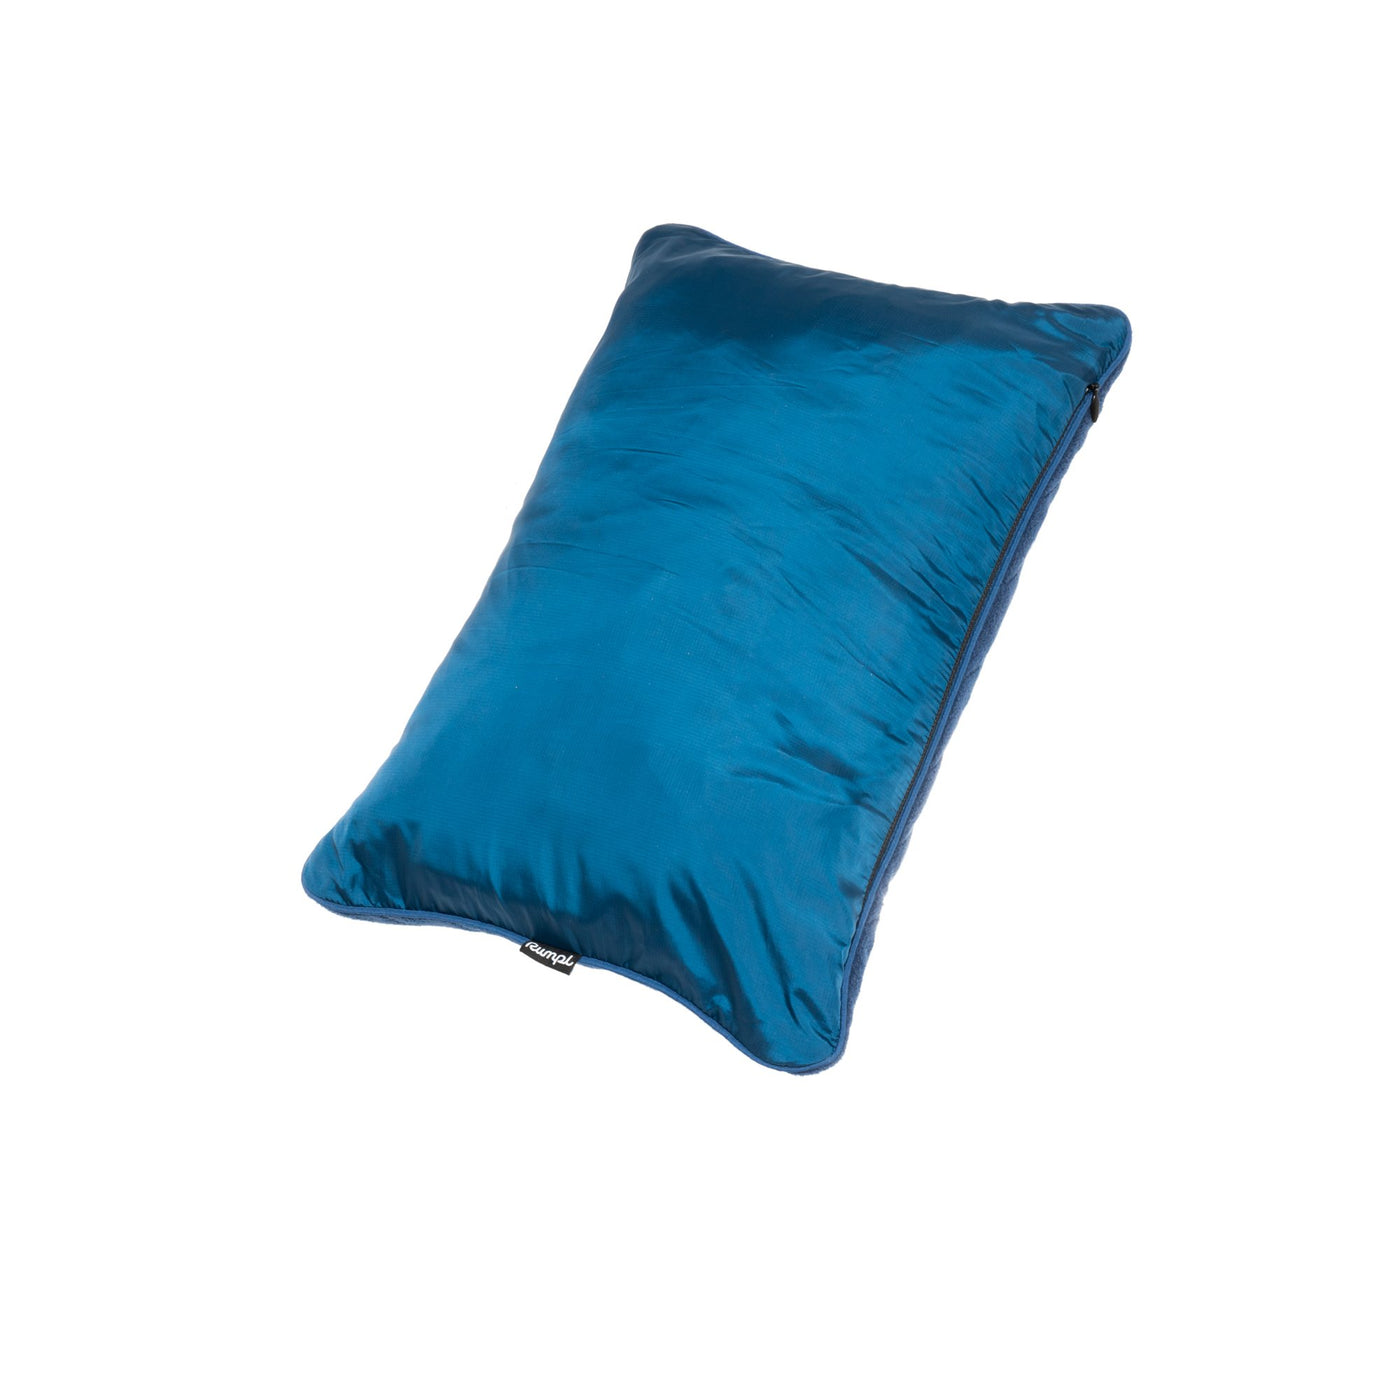 Rumpl | The Stuffable Pillowcase - Kaleidoscope | One Size |  | Stuffable Pillow